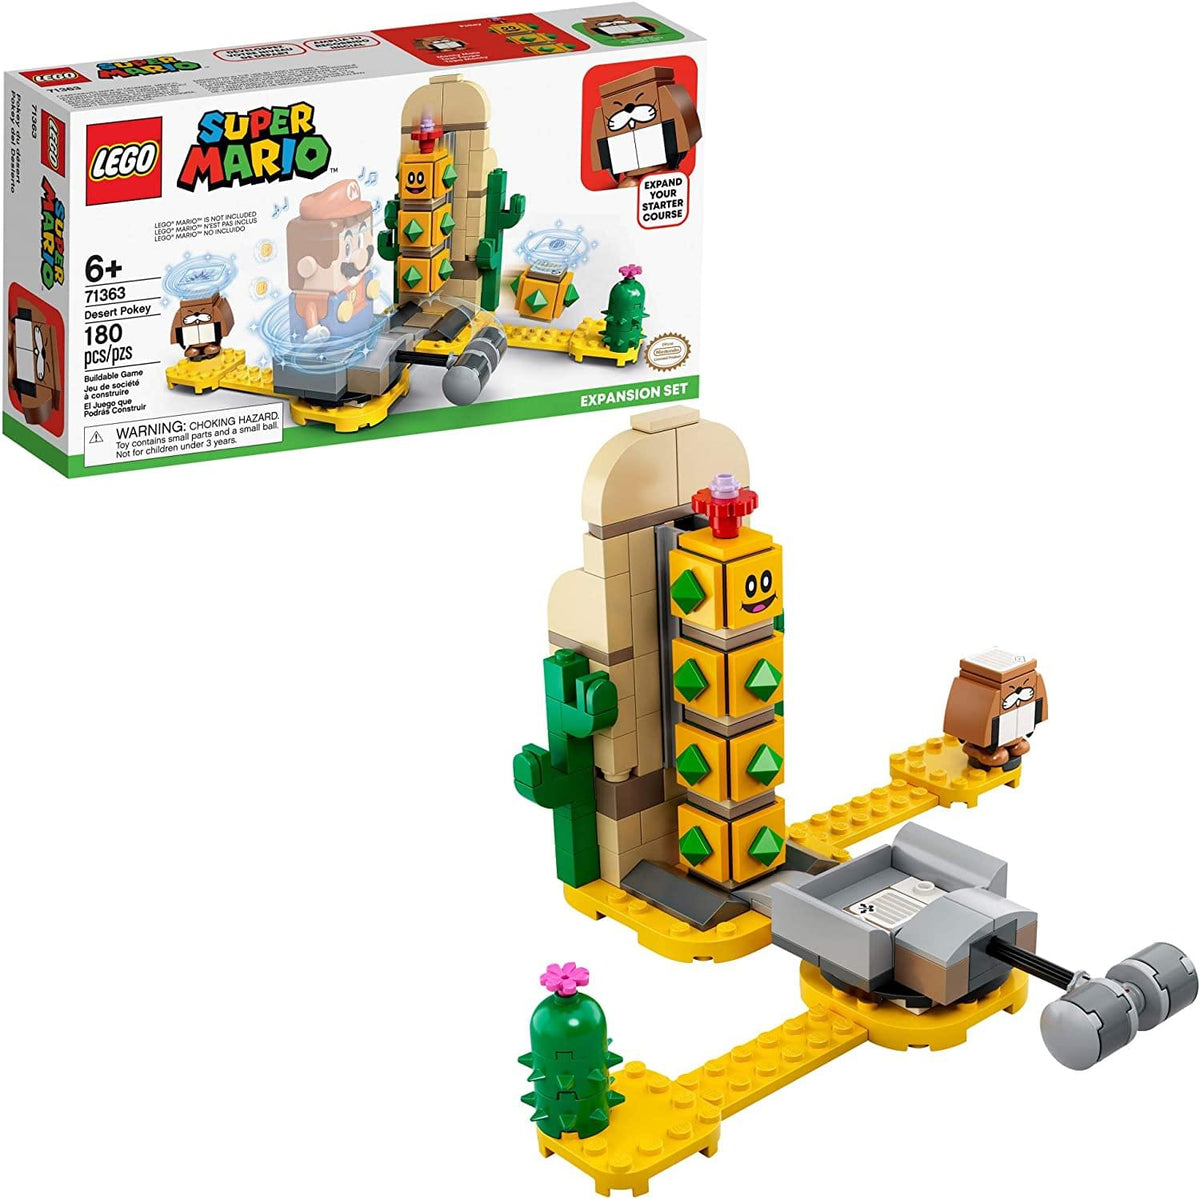 LEGO Super Mario Desert Pokey 71363 | 180 Piece Expansion Set